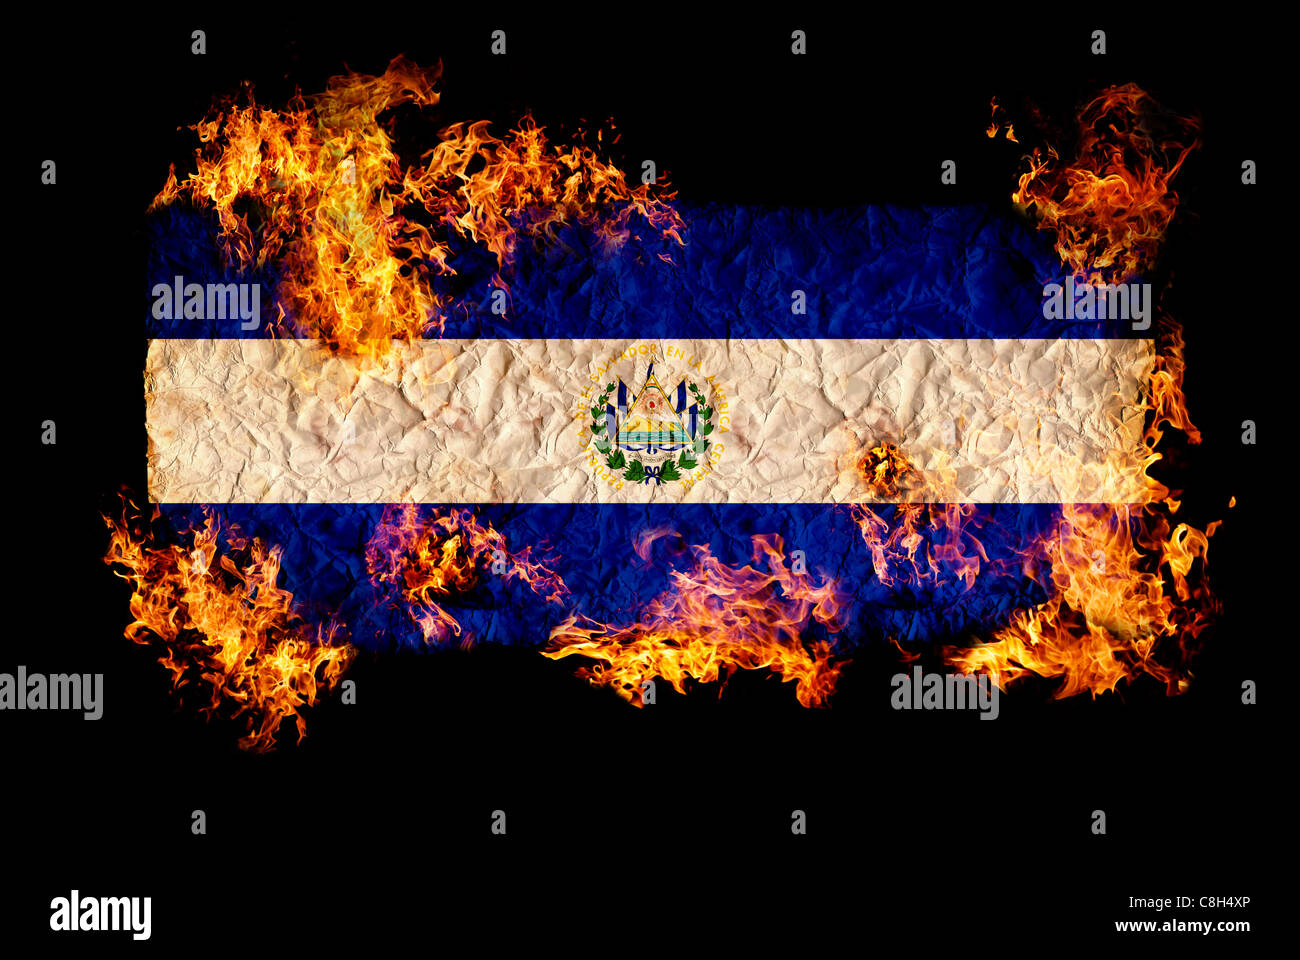 National symbols and flag of El Salvador Stock Photo Royalty Free